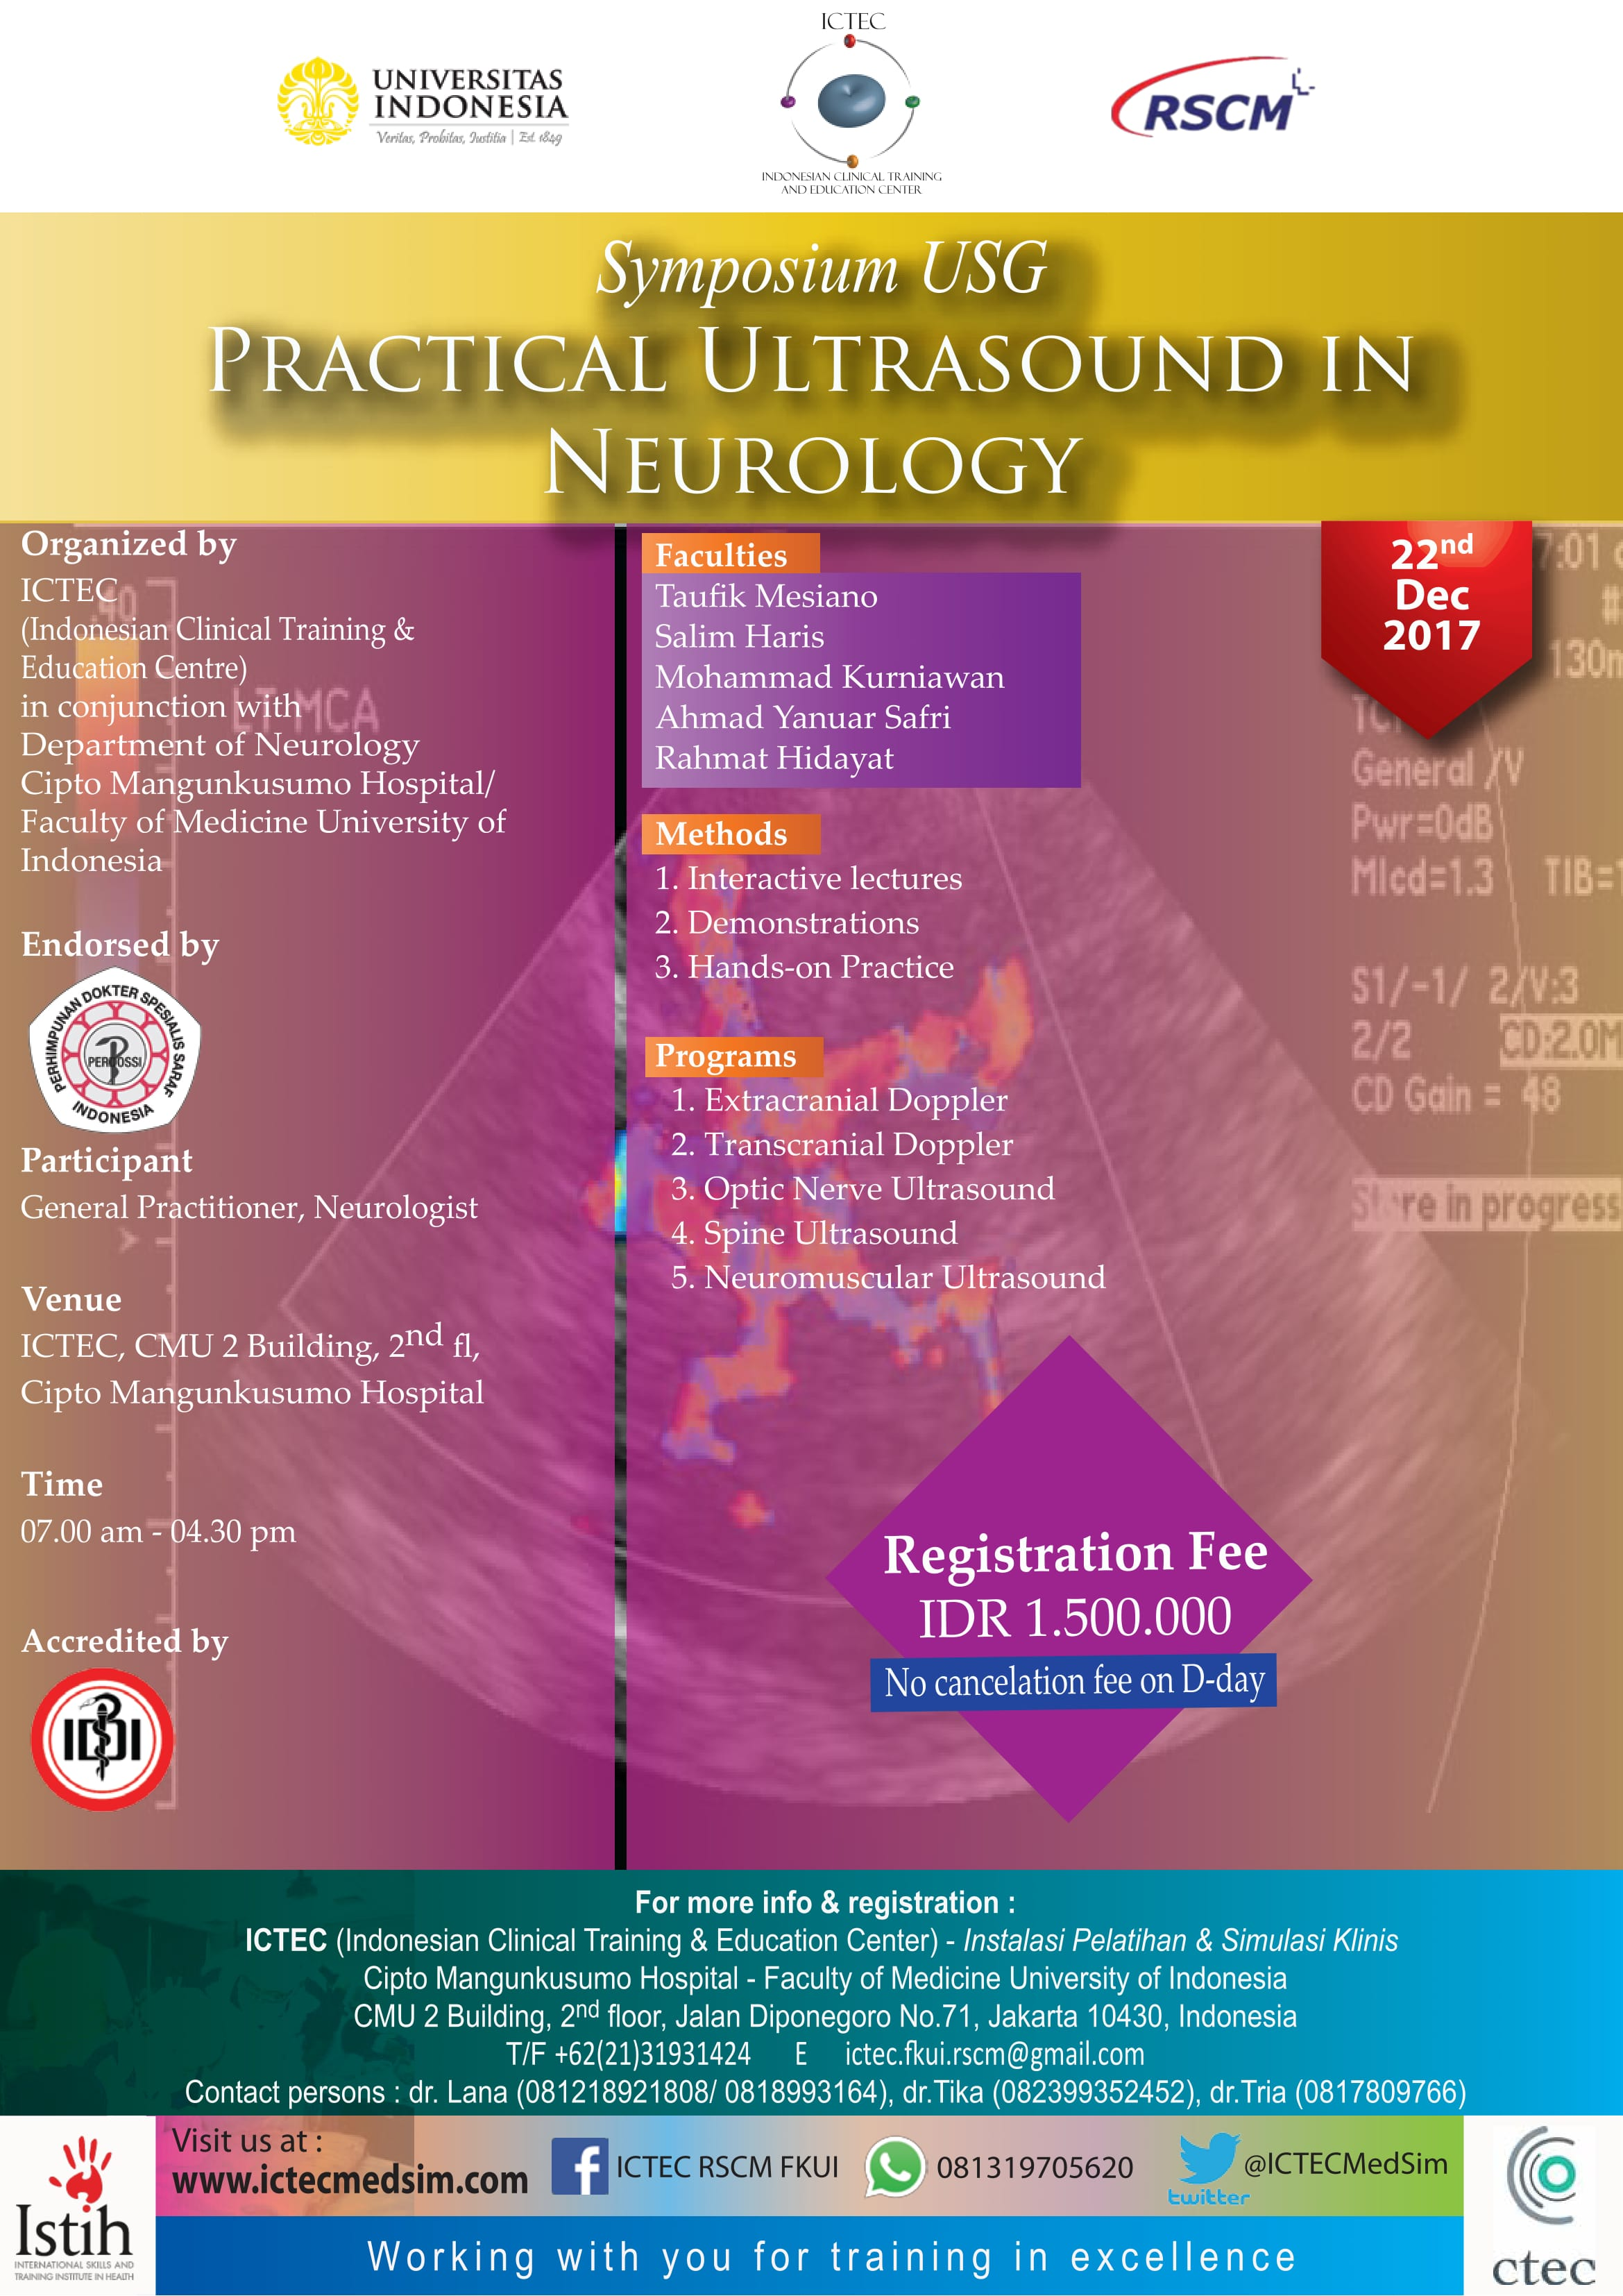 Flyer Dec 22 Symposium USG Practical Ultrasound in Neurology-1